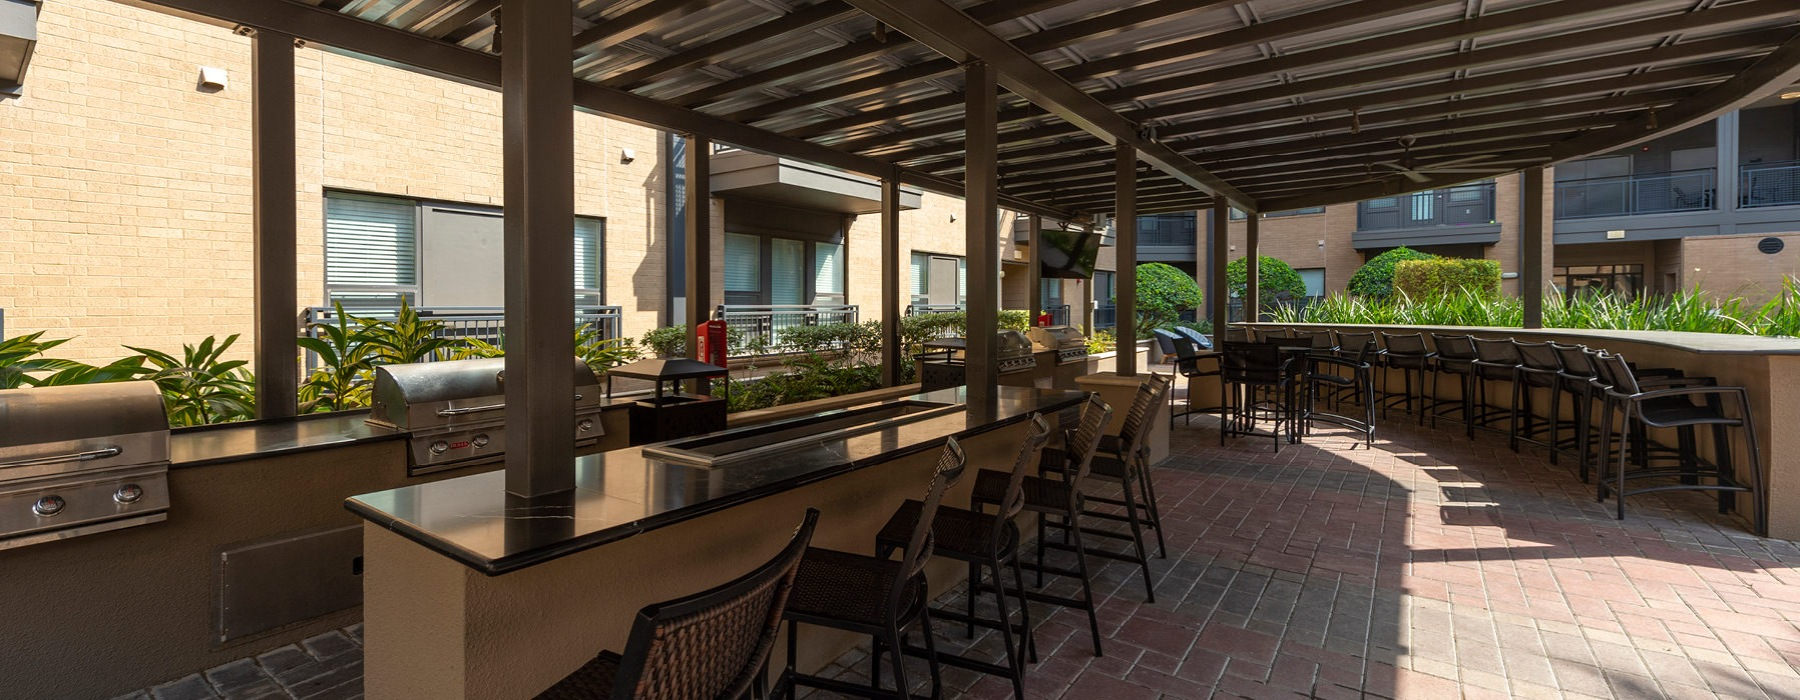 outdoor kitchen pavilion featuring four grill stations, circular bar and big screen TV